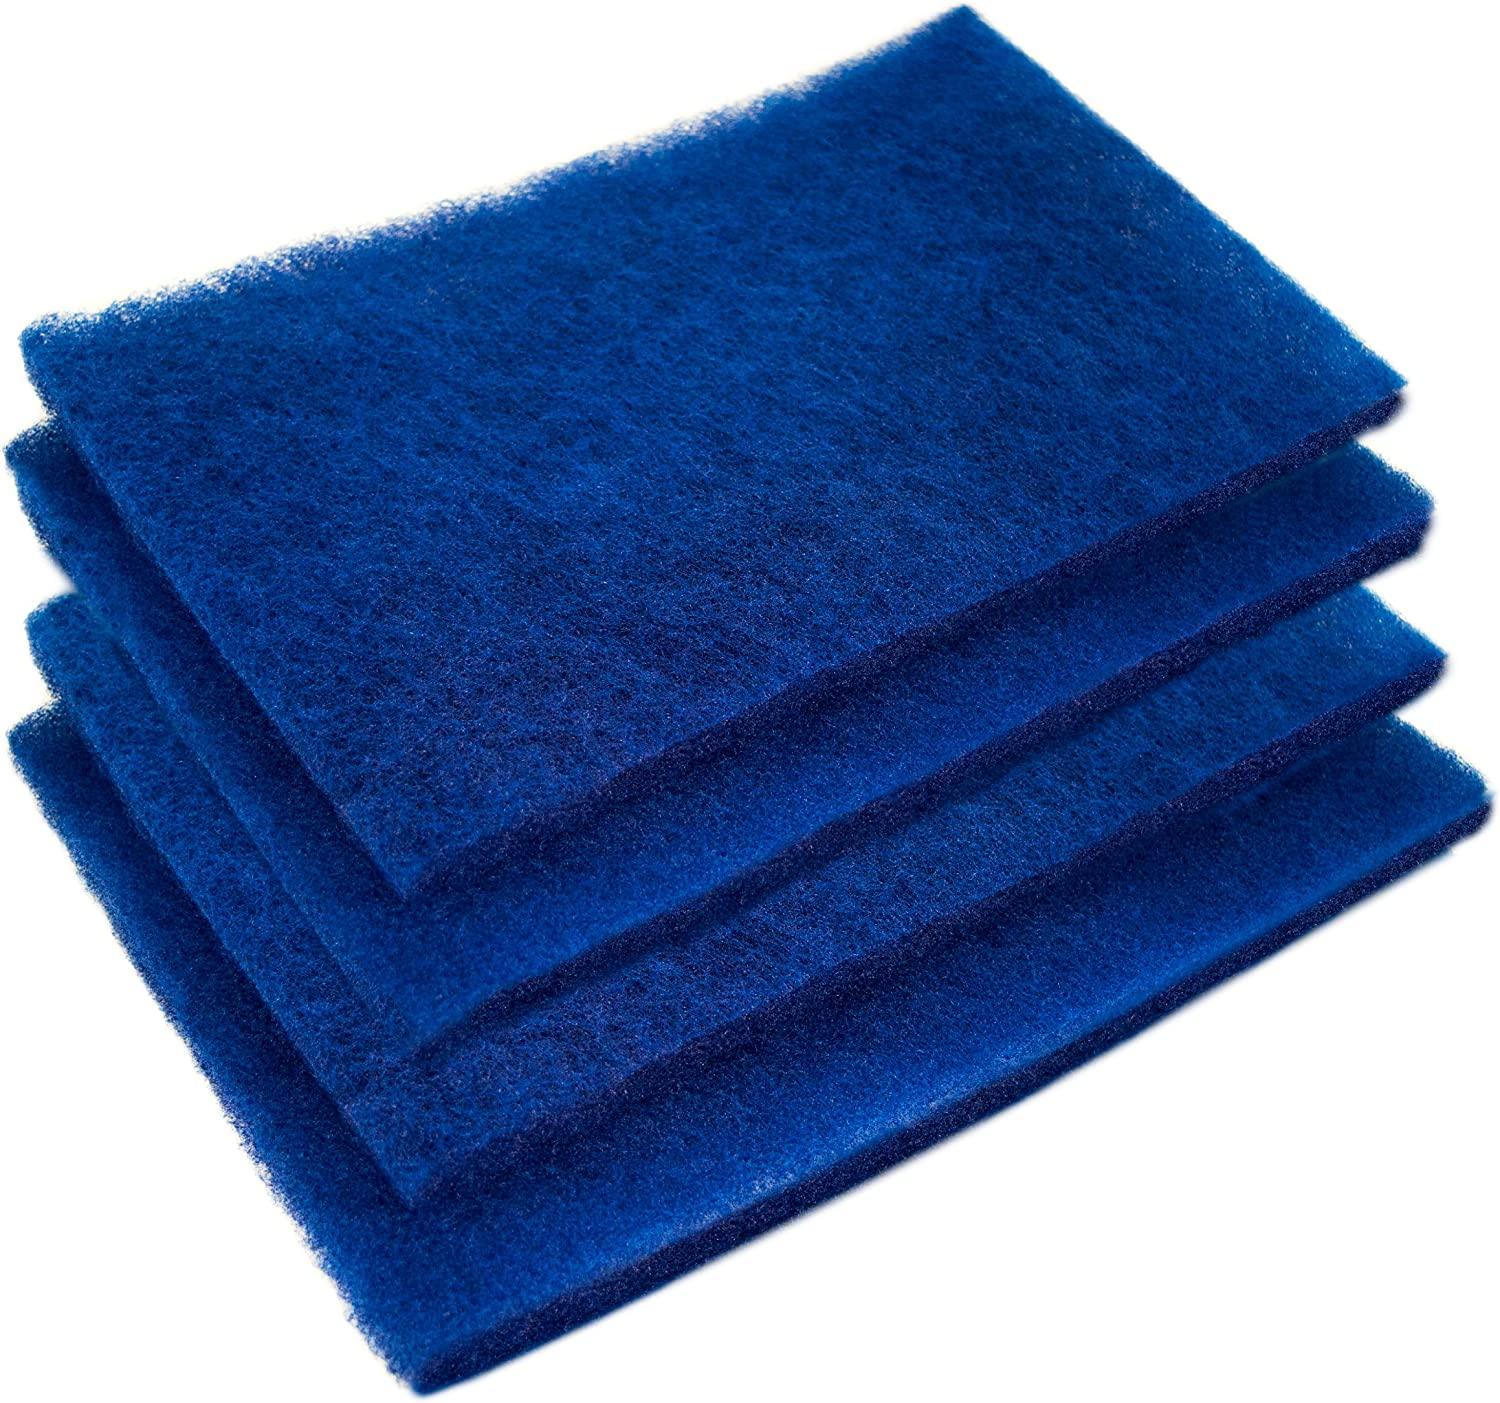 18x24x1 Furnace Filters Air Conditioner Filter Replacement Clean Vent-4 Pack